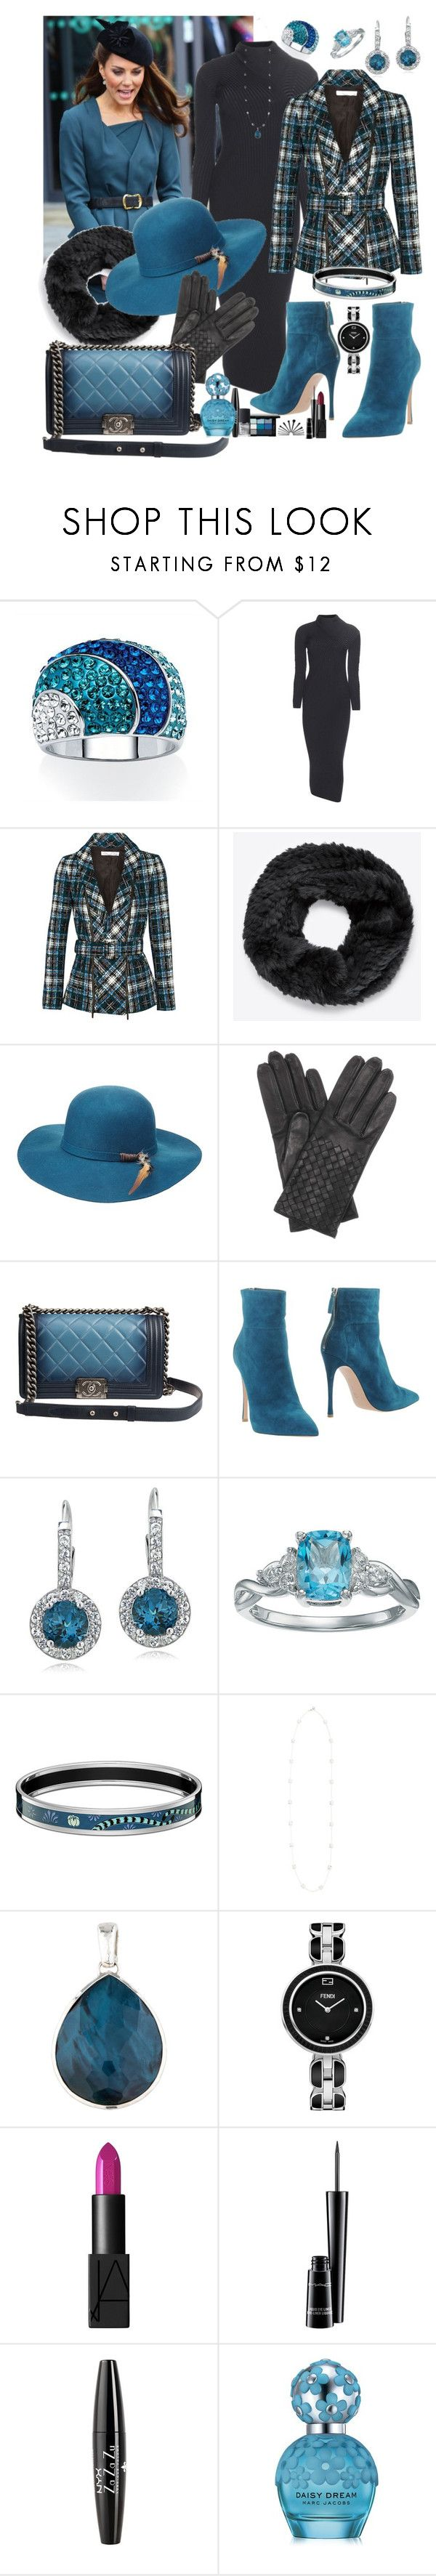 """British Elegance"" by kaypearl ❤ liked on Polyvore featuring Palm Beach Jewelry, Acne Studios, Oscar de la Renta, Vince, Charlotte Russe, Bottega Veneta, Chanel, Gianvito Rossi, Buccellati and Ippolita"